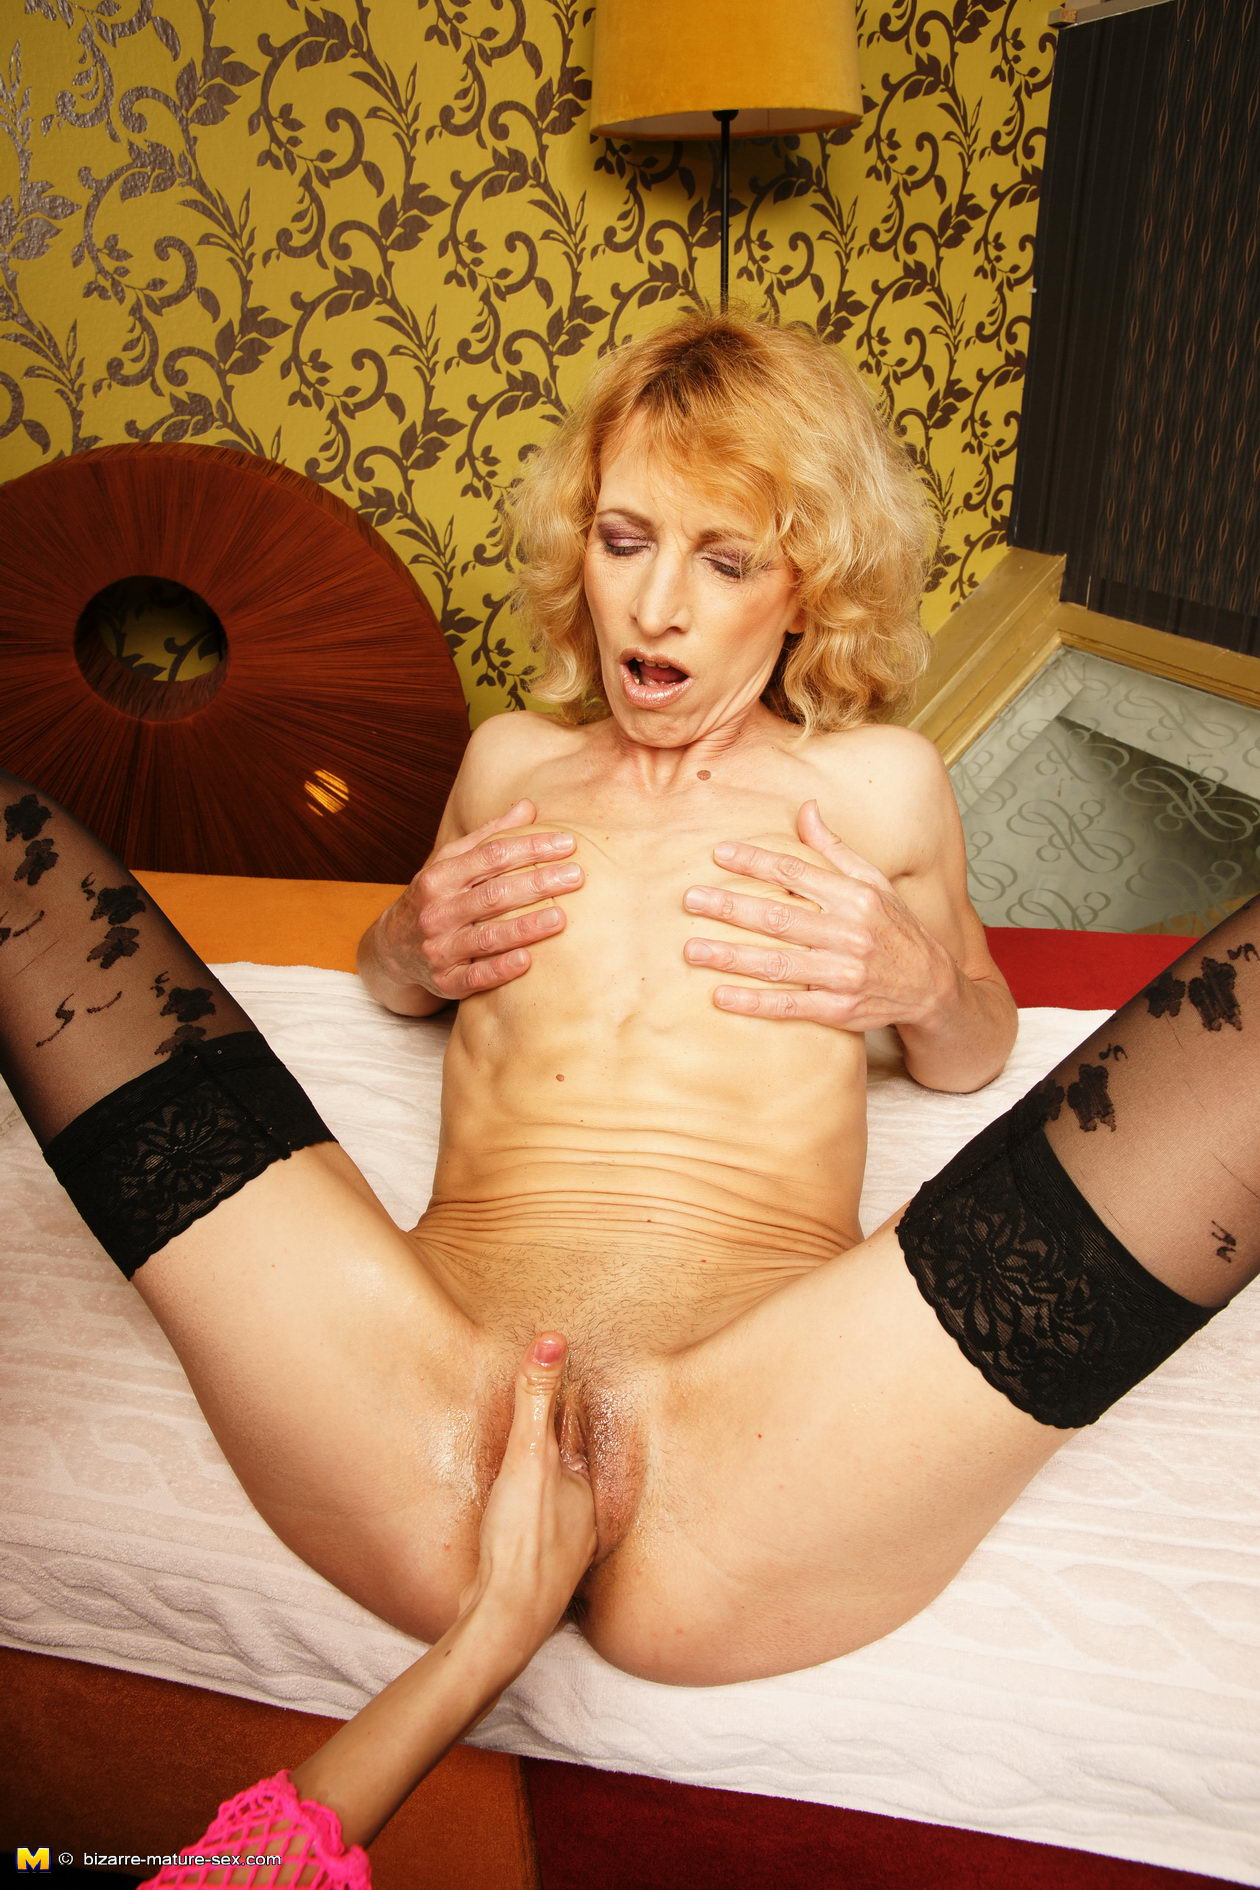 horny-housewifes-fisting-virgine-anal-pic